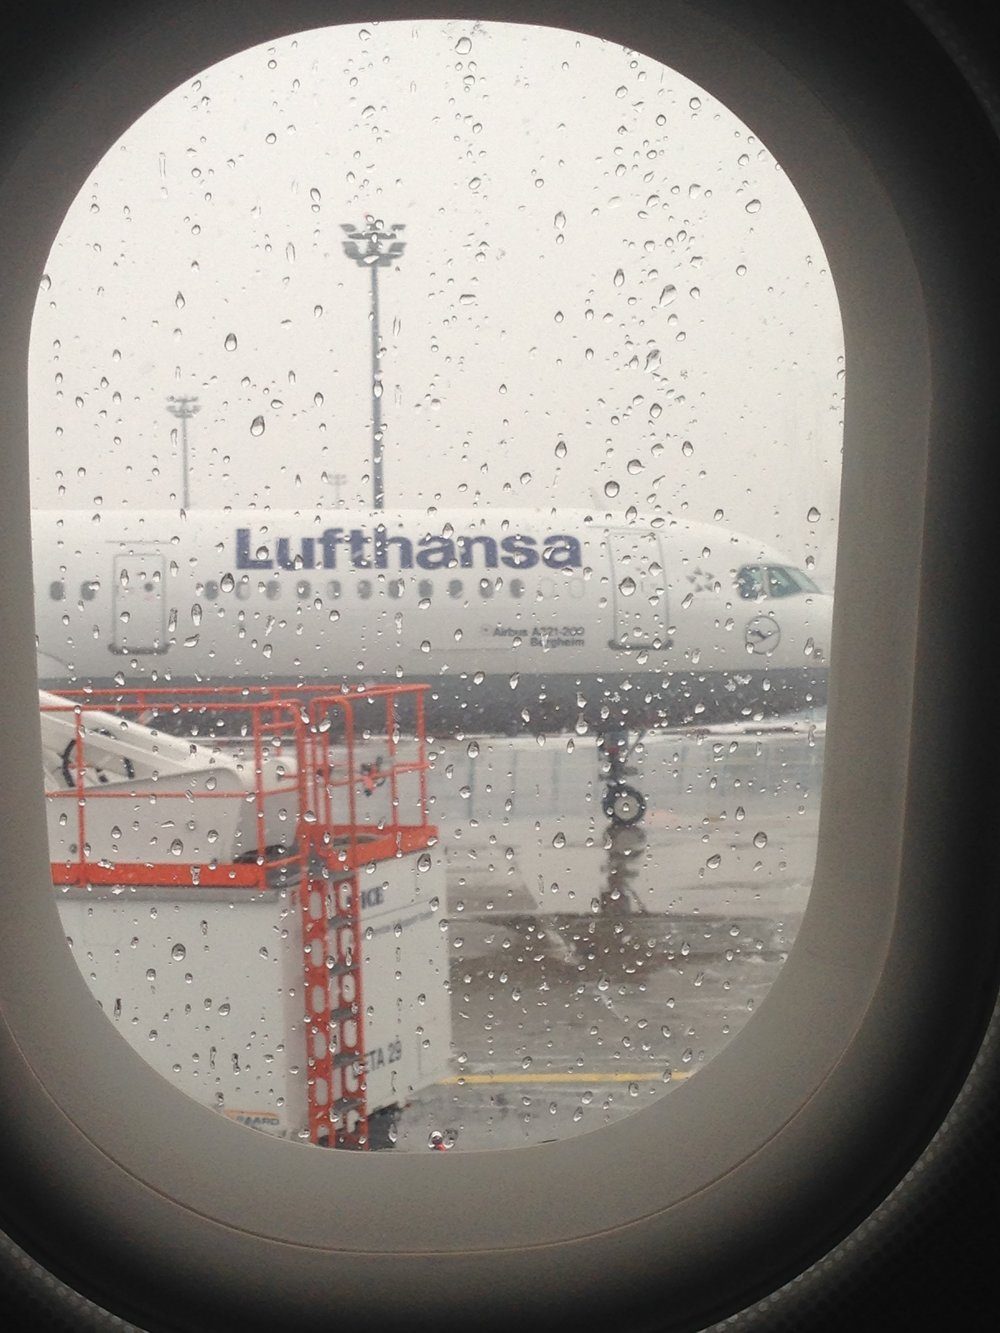 Our flight out of Frankfurt was delayed by snow and limited visibility. I couldn't even see the wings at one point.